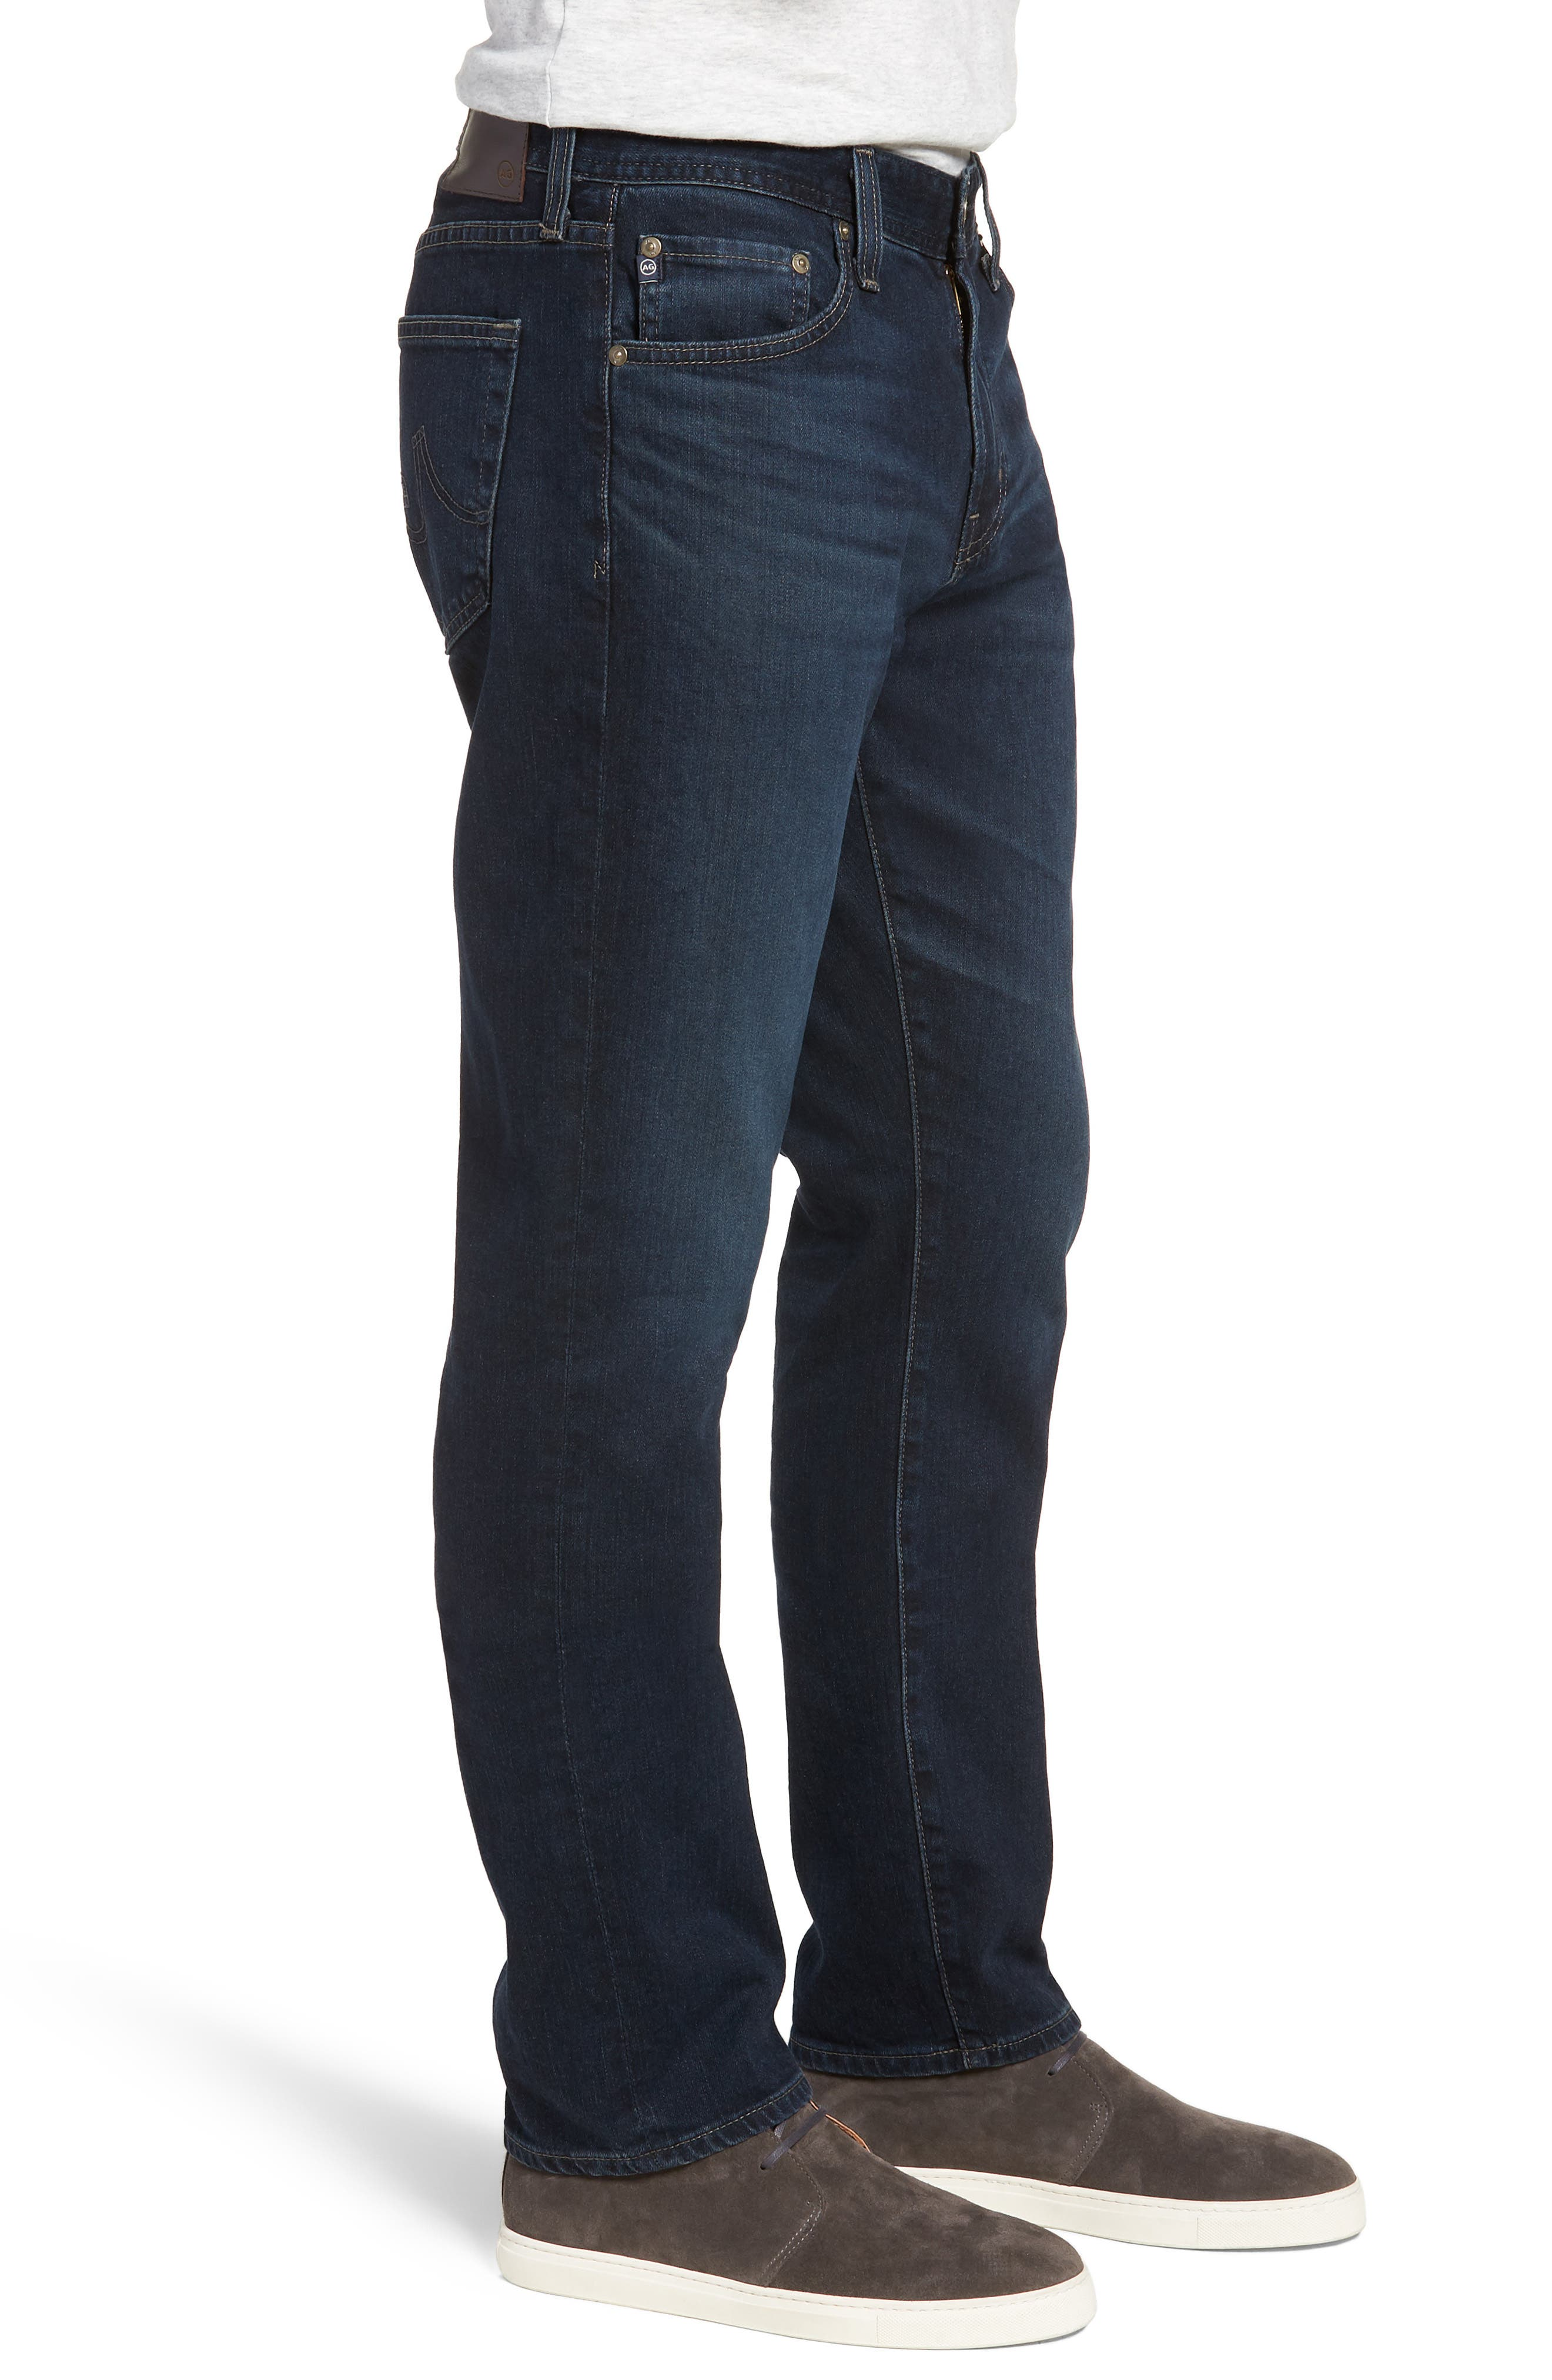 Everett Slim Straight Fit Jeans,                             Alternate thumbnail 3, color,                             Shadow Mountain